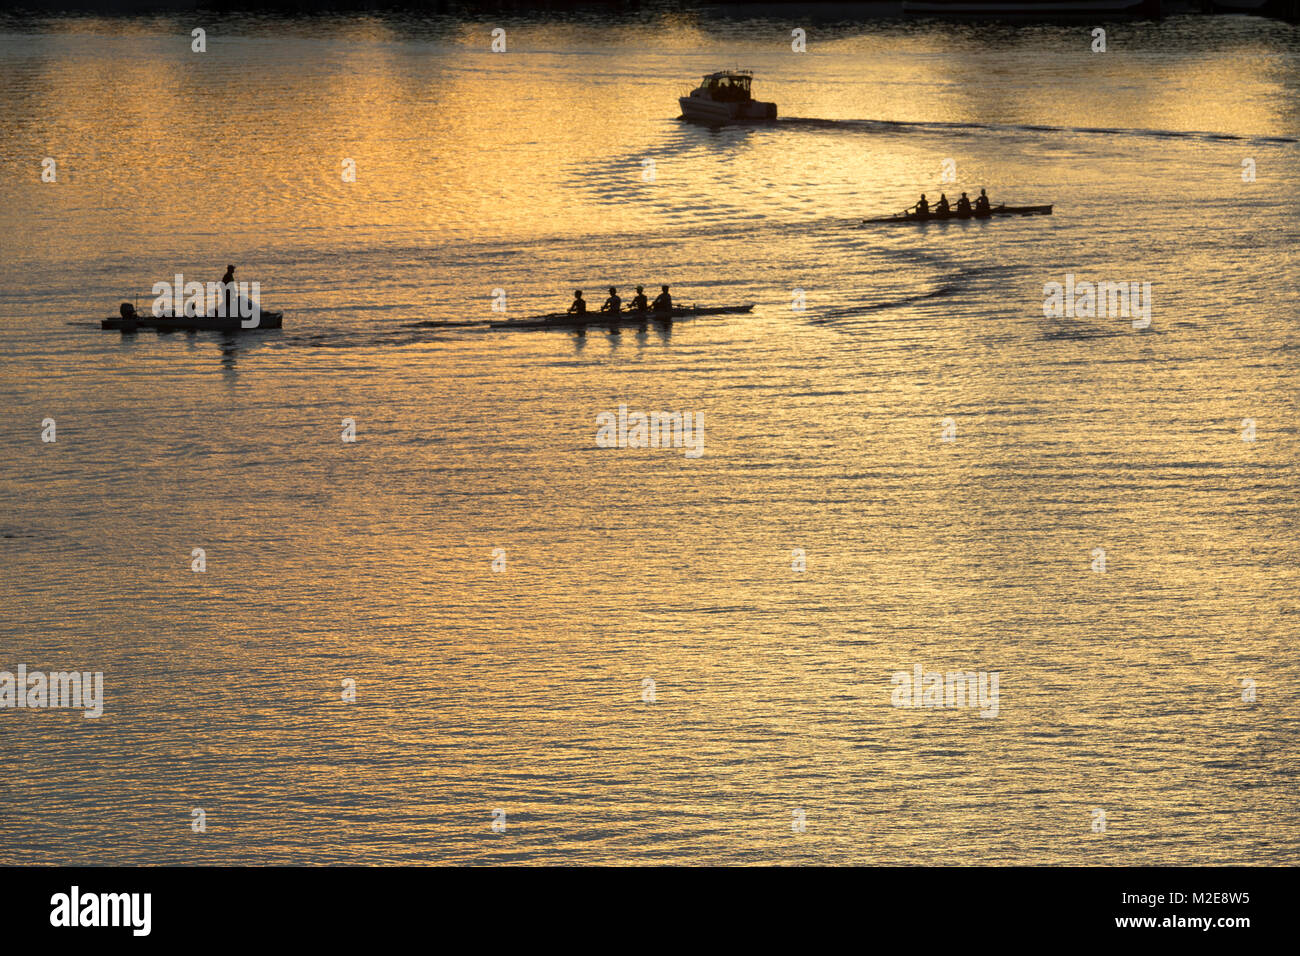 United States, Washington, Seattle, Rowing schells on Lake Union with coach in powerboat following - Stock Image